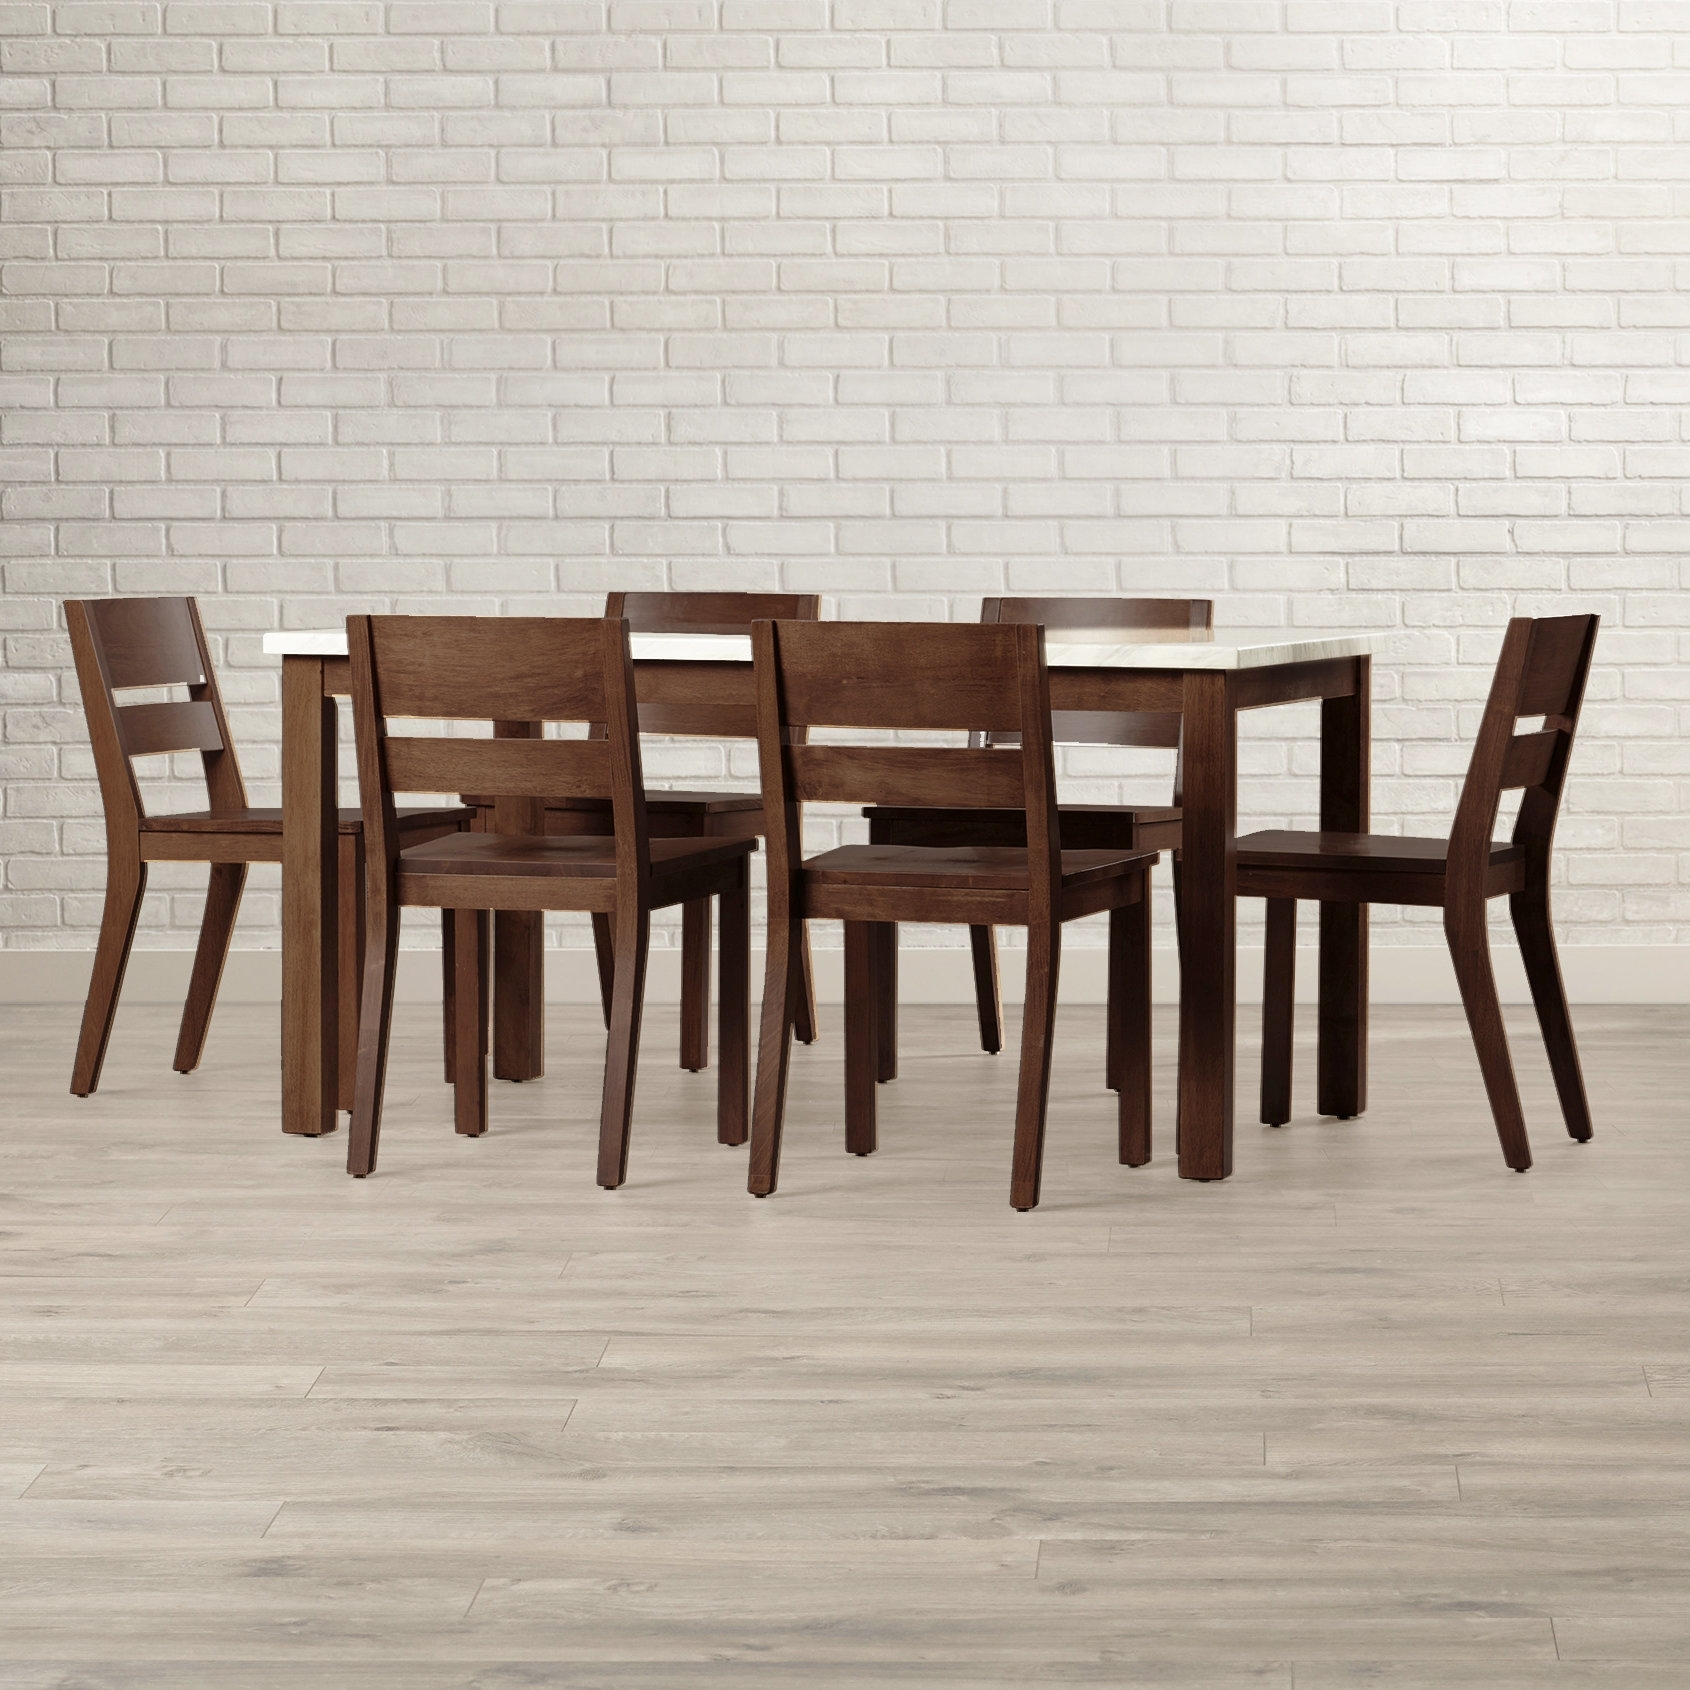 Brayden Studio Losey 7 Piece Dining Set & Reviews | Wayfair Intended For Latest Candice Ii 7 Piece Extension Rectangular Dining Sets With Slat Back Side Chairs (View 3 of 20)